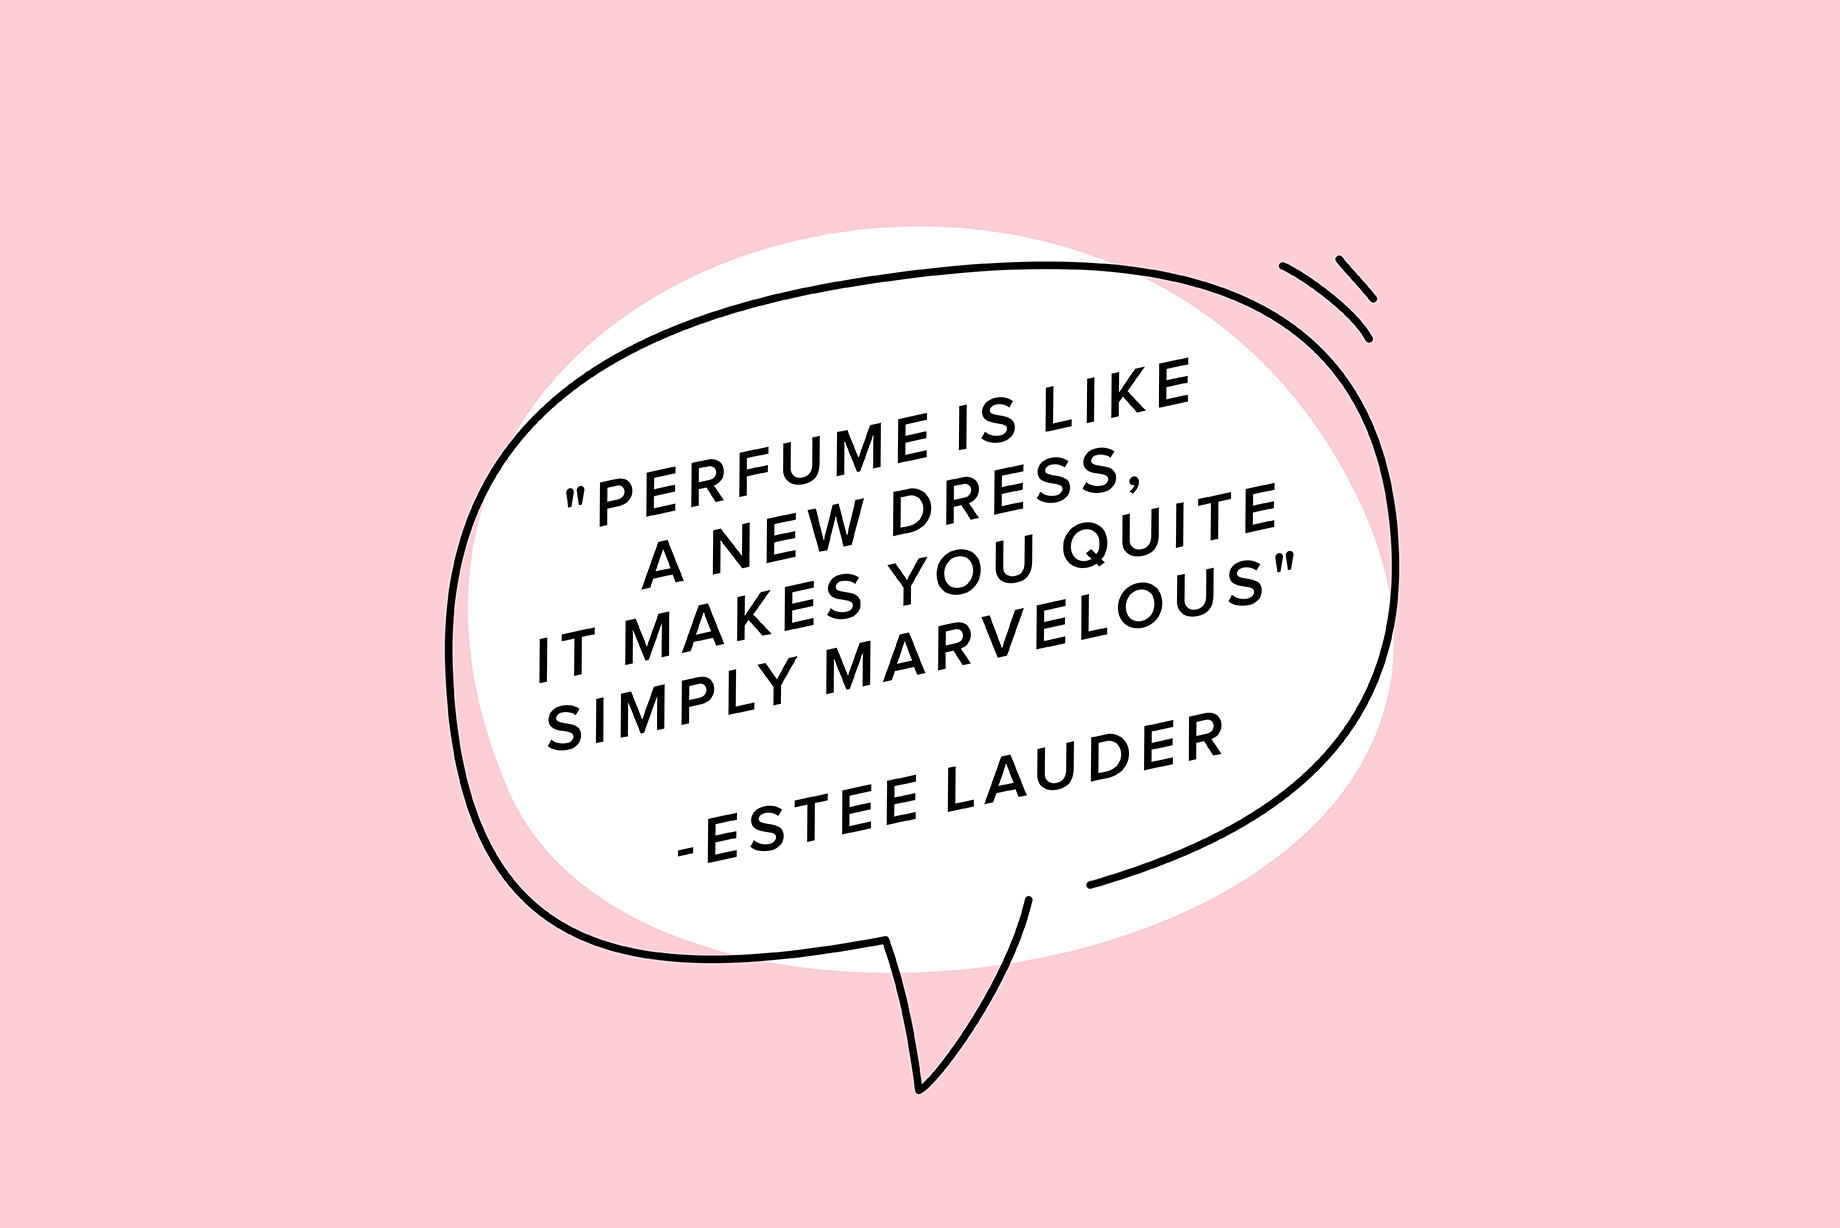 15 Of The World S Best Quotes On Fragrance Scentbird Perfume And Cologne Blog